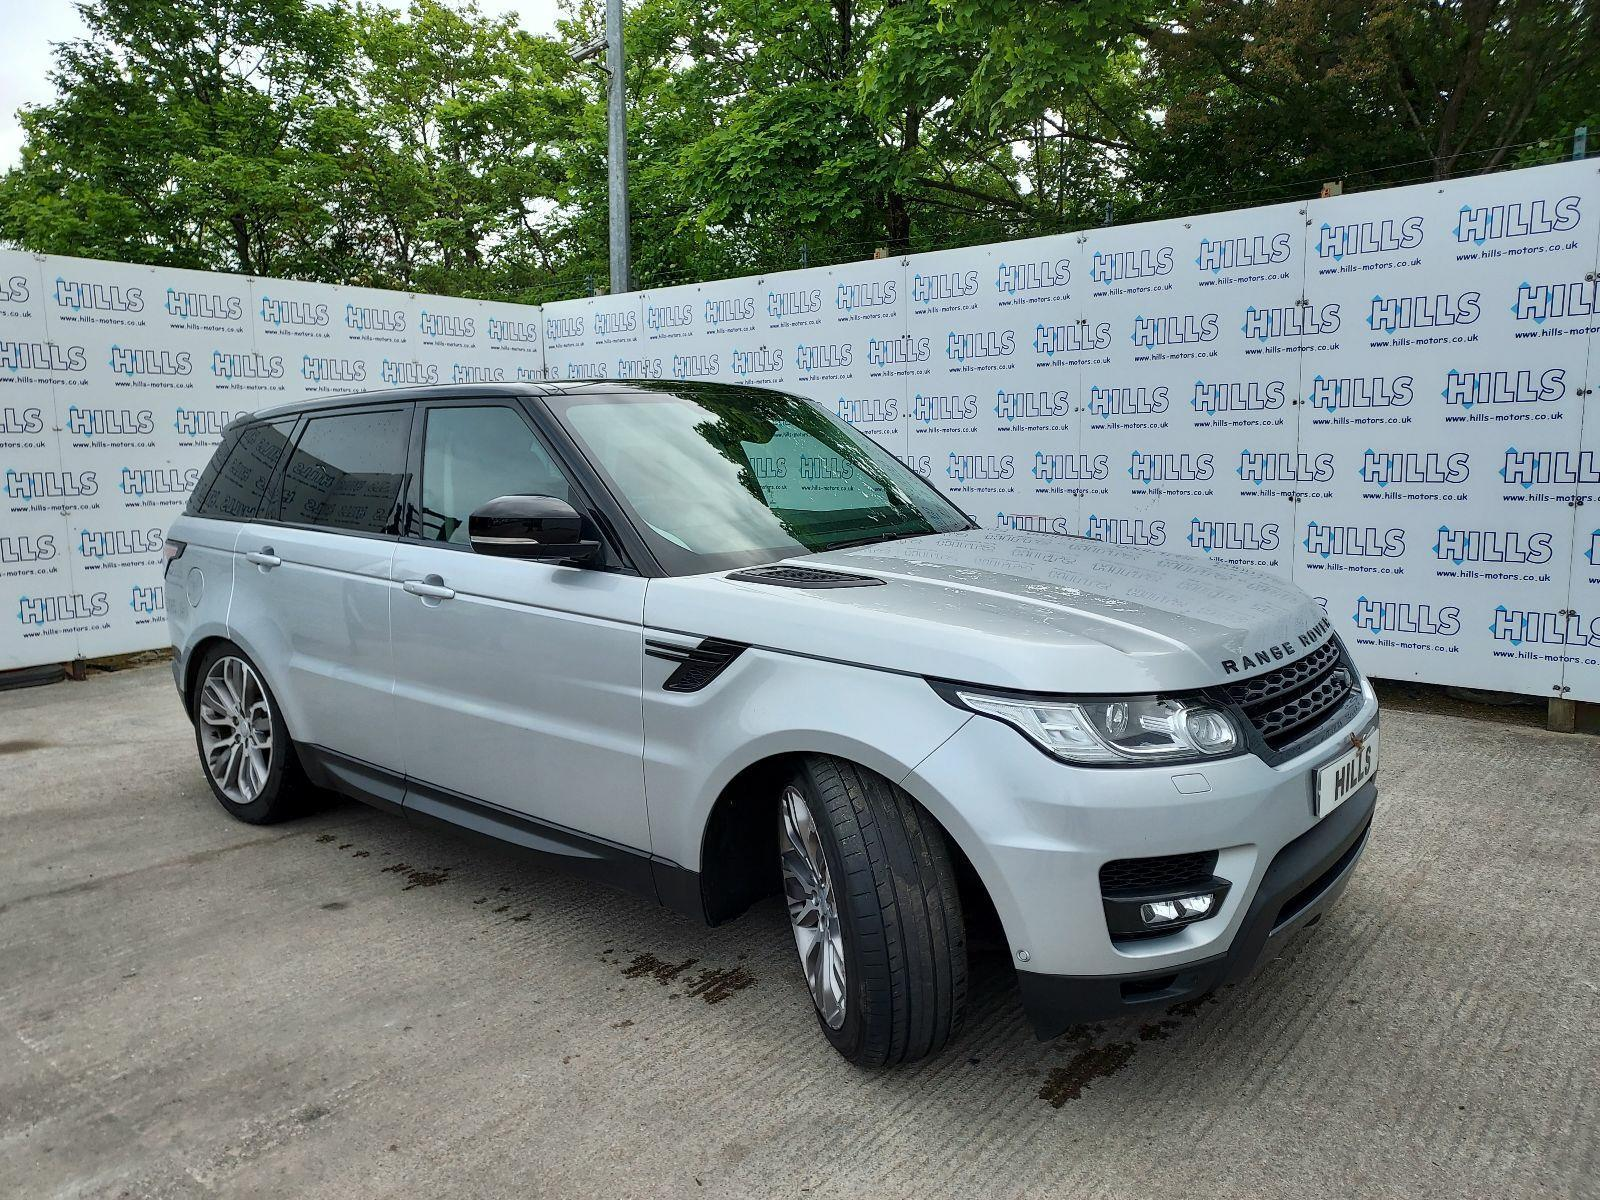 2017 Land Rover Range Rover Sport SDV6 HSE DYNAMIC 2993cc TURBO Diesel Automatic 8 Speed ESTATE